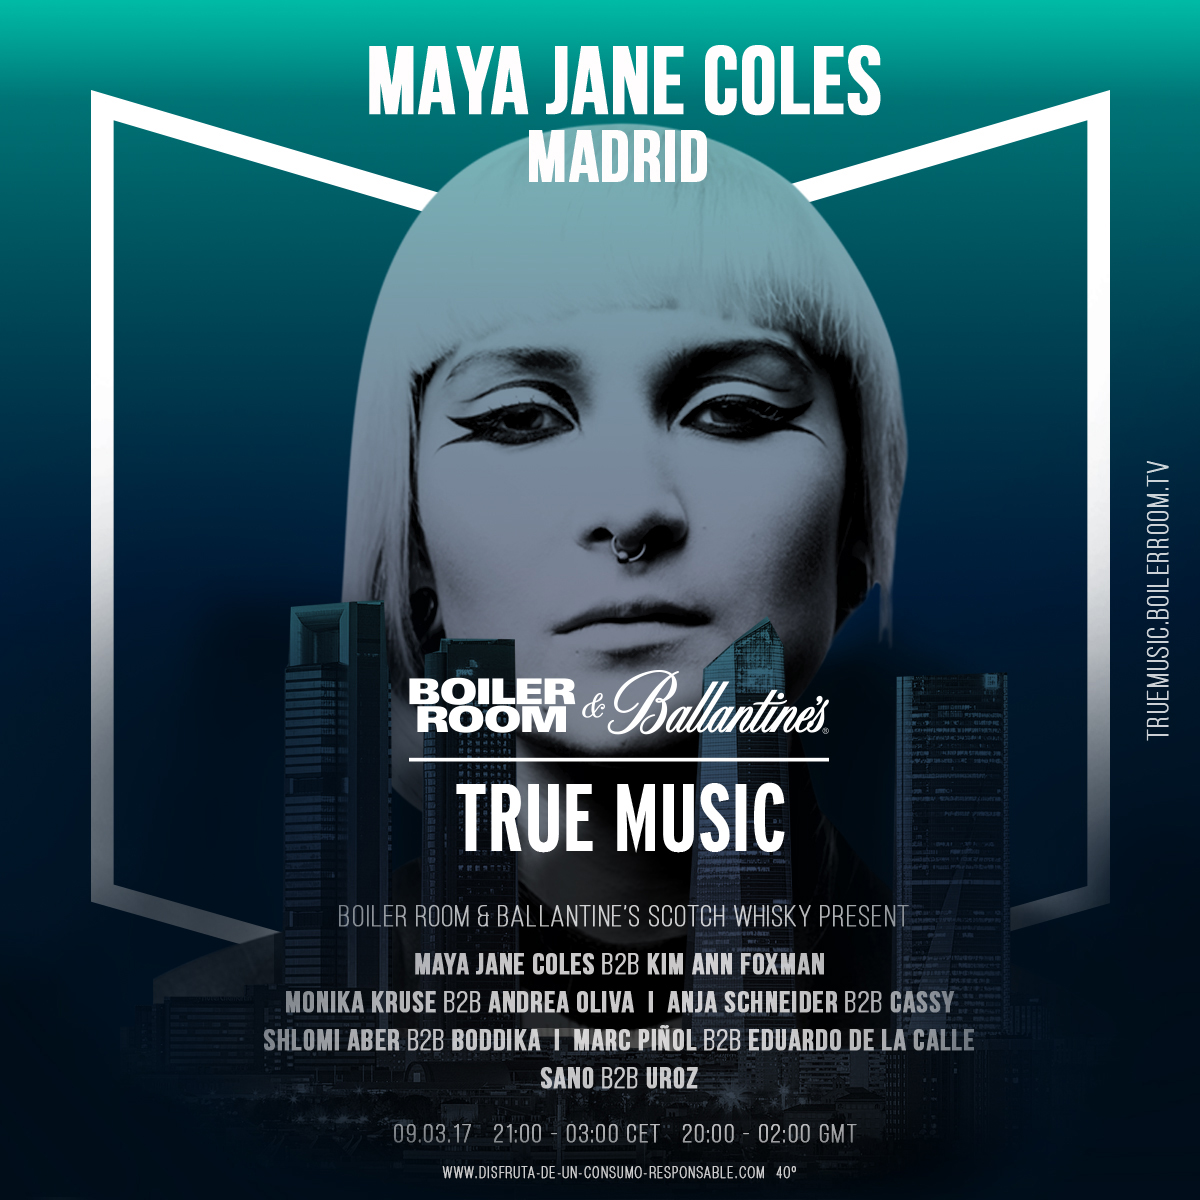 download → Maya Jane Coles B2B Kim Ann Foxman, Anja Schneider B2B Cassy, Monika Kruse B2B Andrea Oliva, Shlomi Aber B2B Boddika,etc - live at Boiler Room & Ballantine's True Music (Madrid, Spain) - 1080p HD - 09-Mar-2017